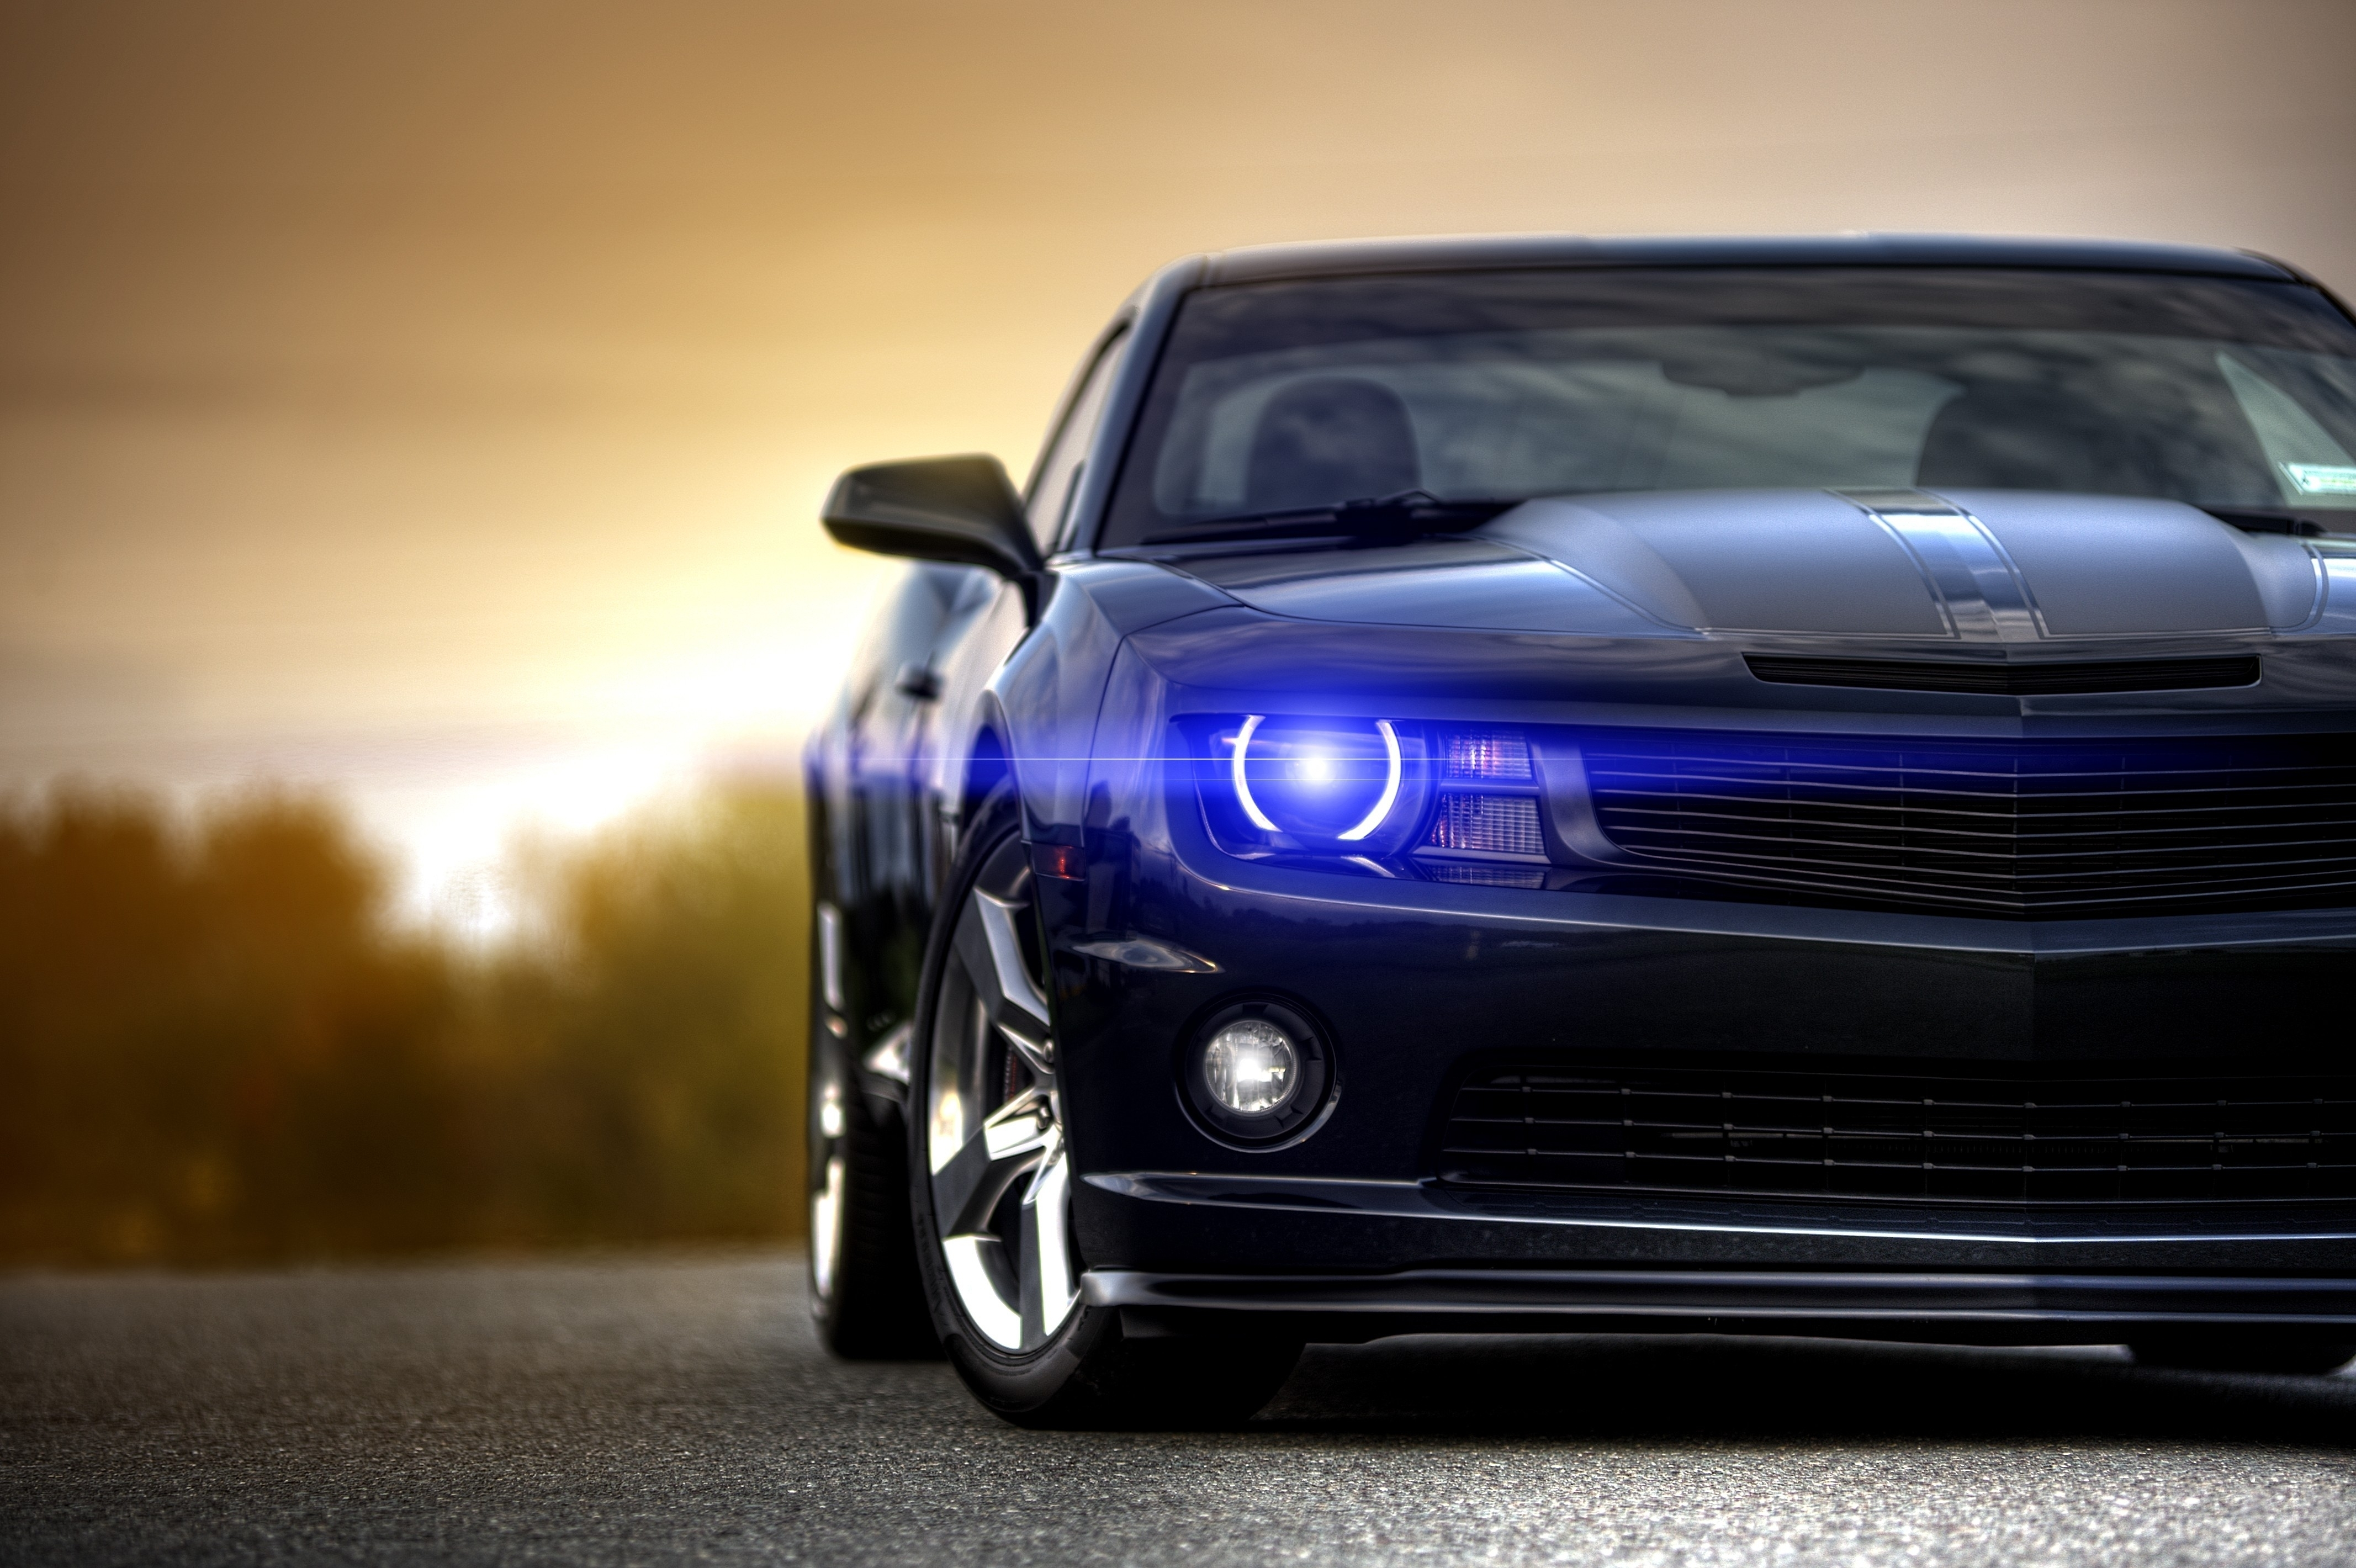 606 chevrolet camaro hd wallpapers | background images - wallpaper abyss